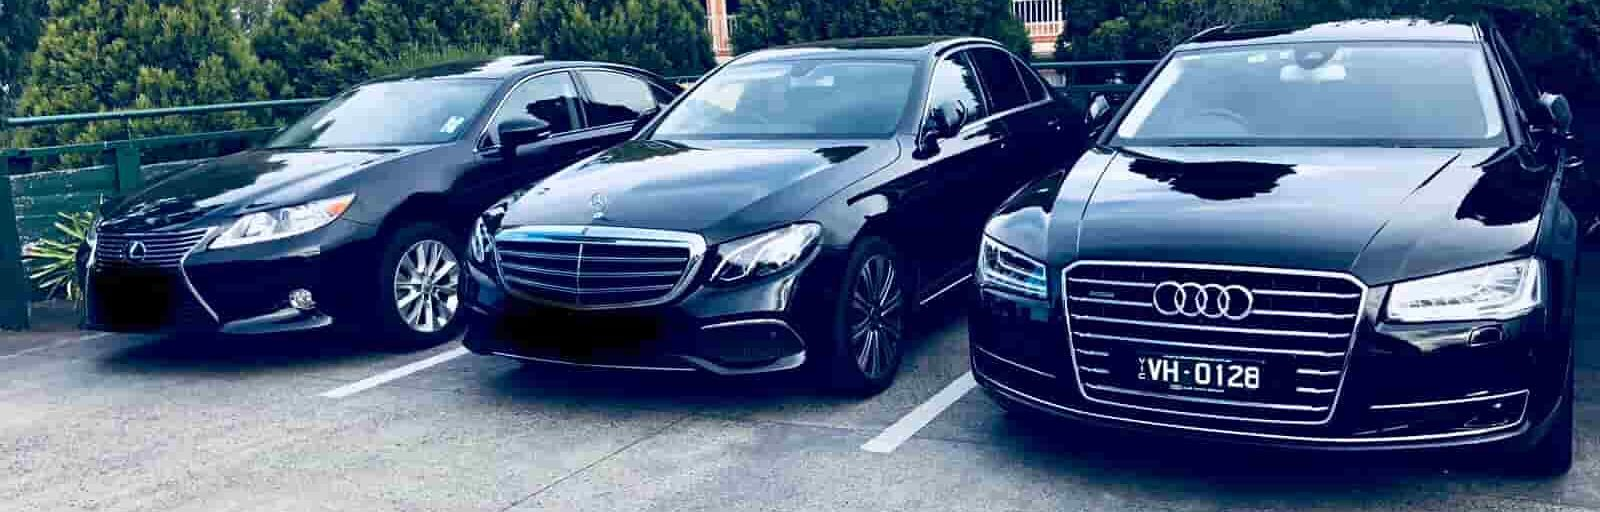 luxury airport transfer Melbourne CHAUFFEUR